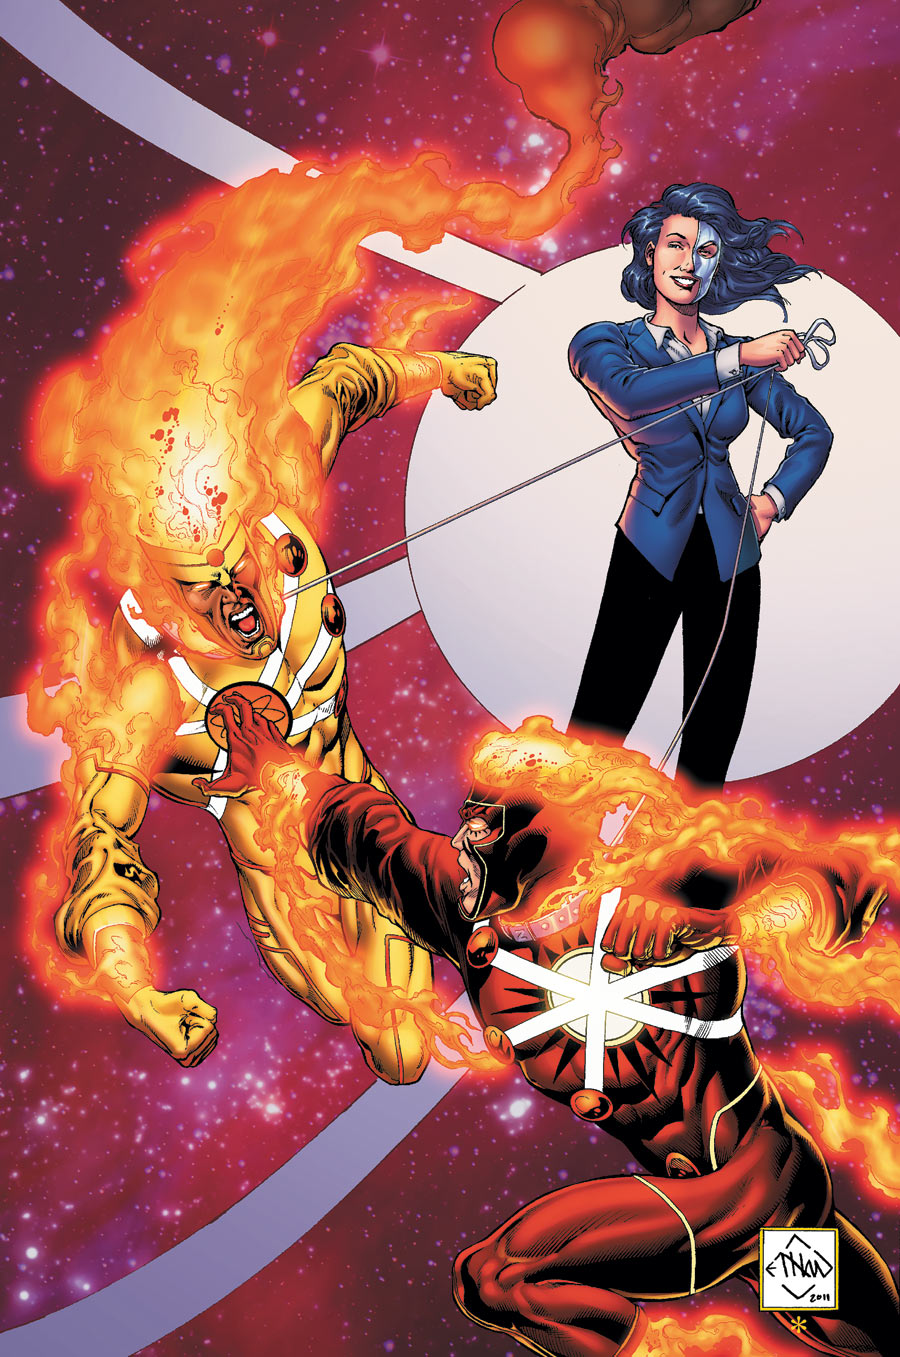 The Fury of Firestorm: The Nuclear Men #5 cover by Ethan Van Sciver